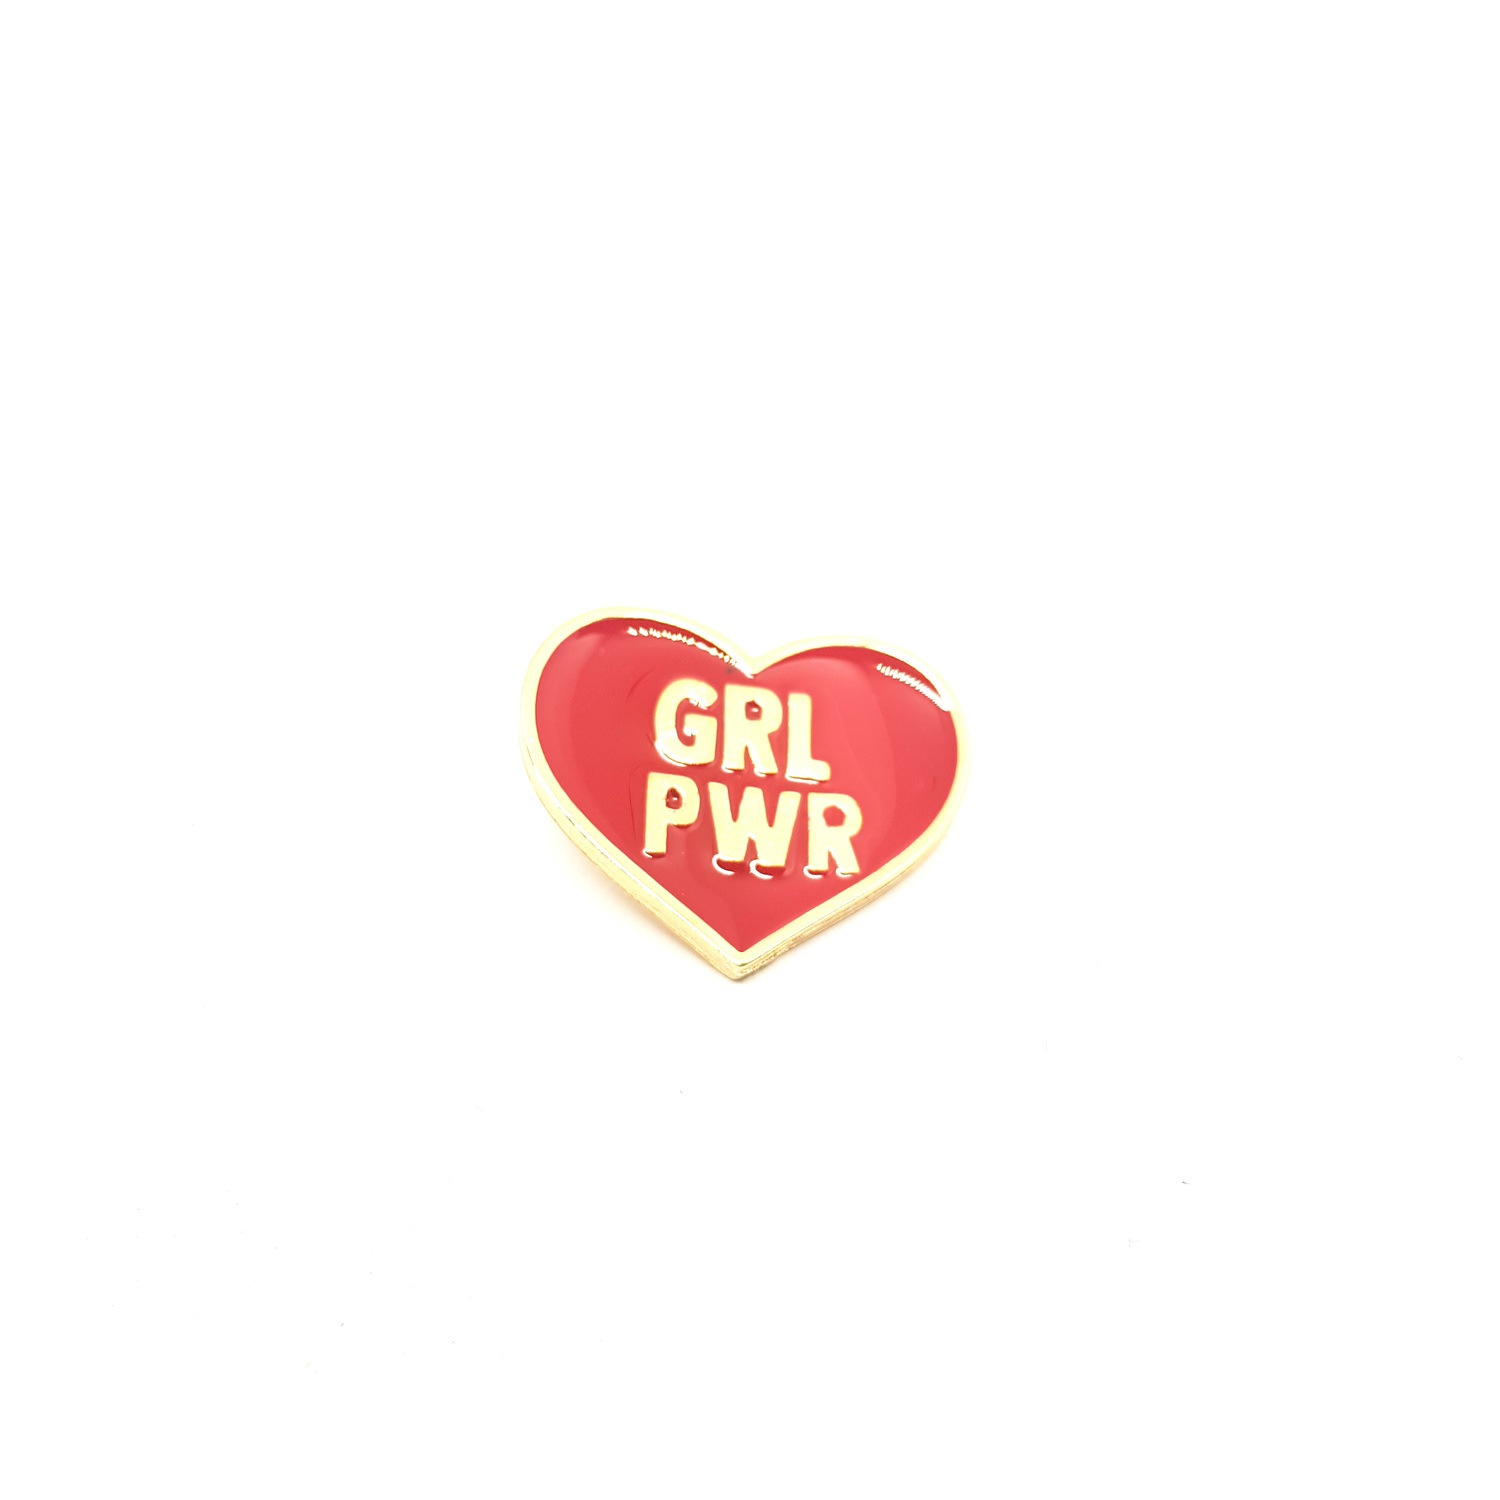 Pin (Broche) - Girl Power